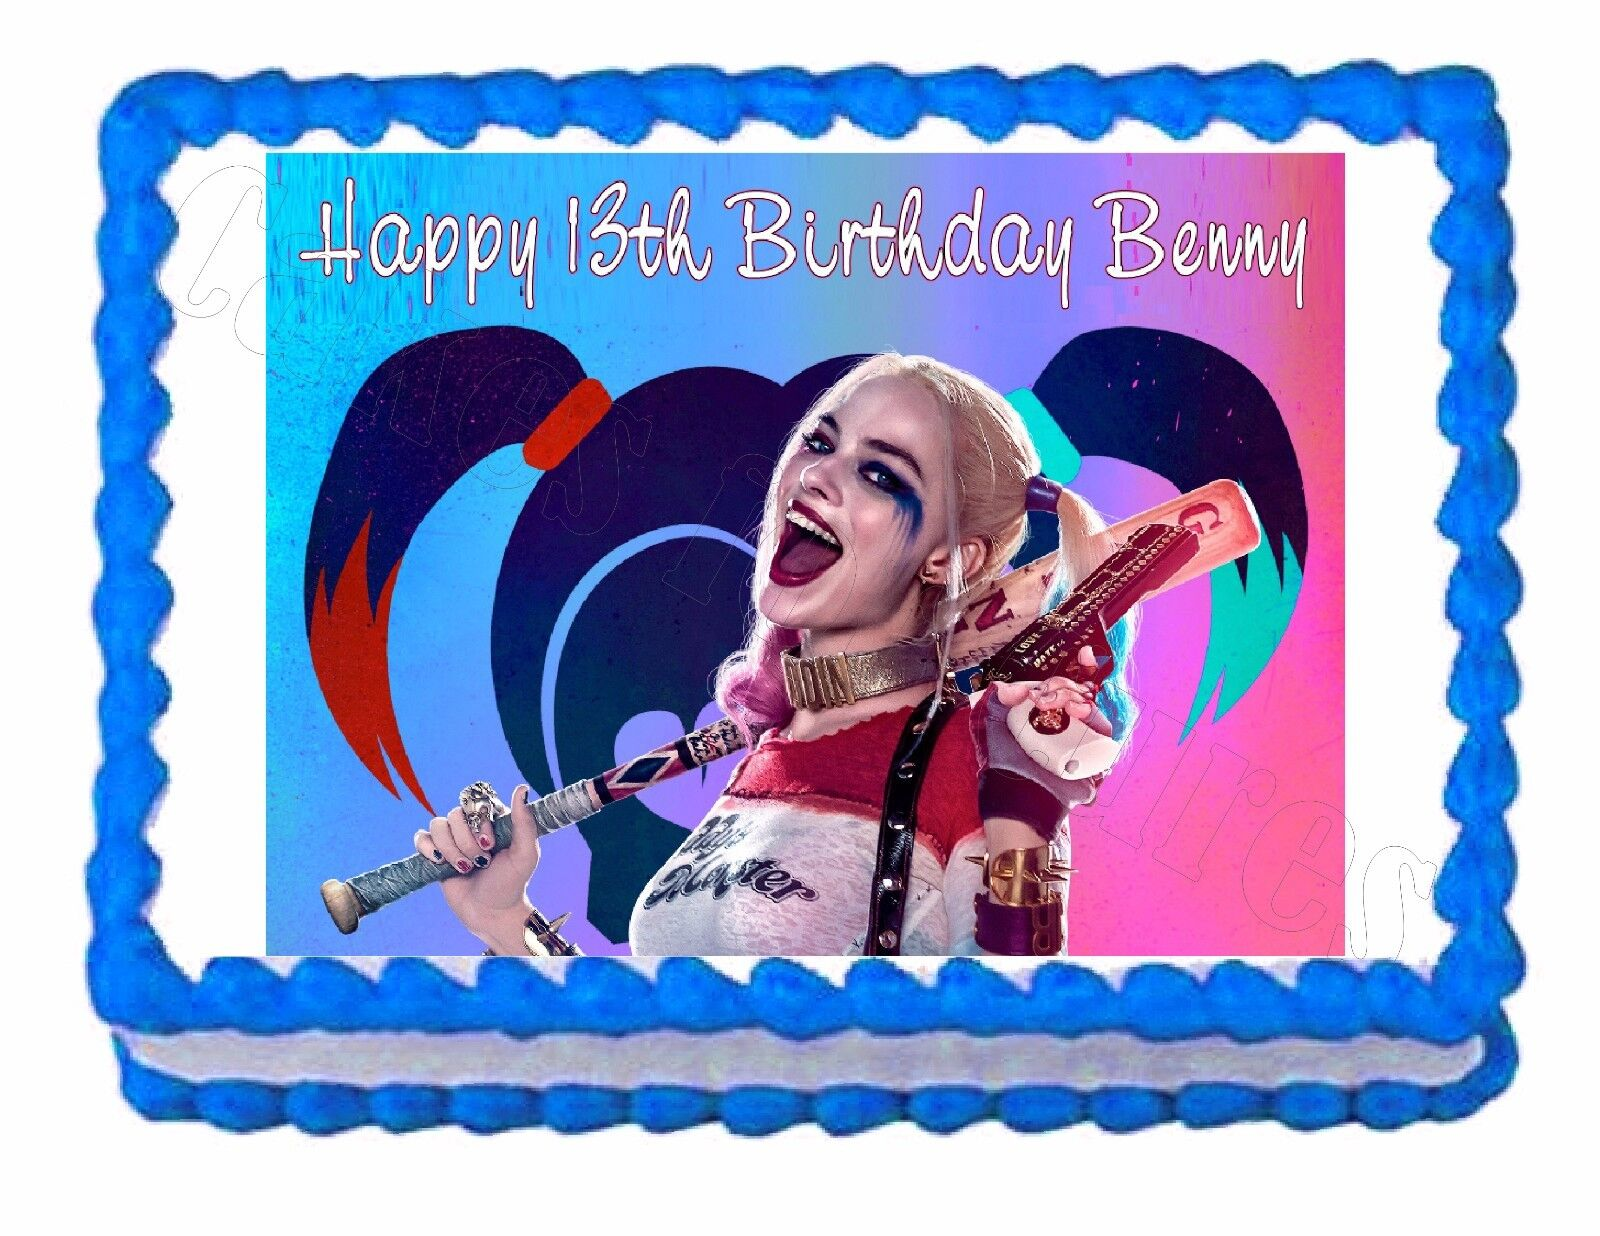 Suicide squad harley quinn party edible cake image cake for Angelina ballerina edible cake topper decoration sale